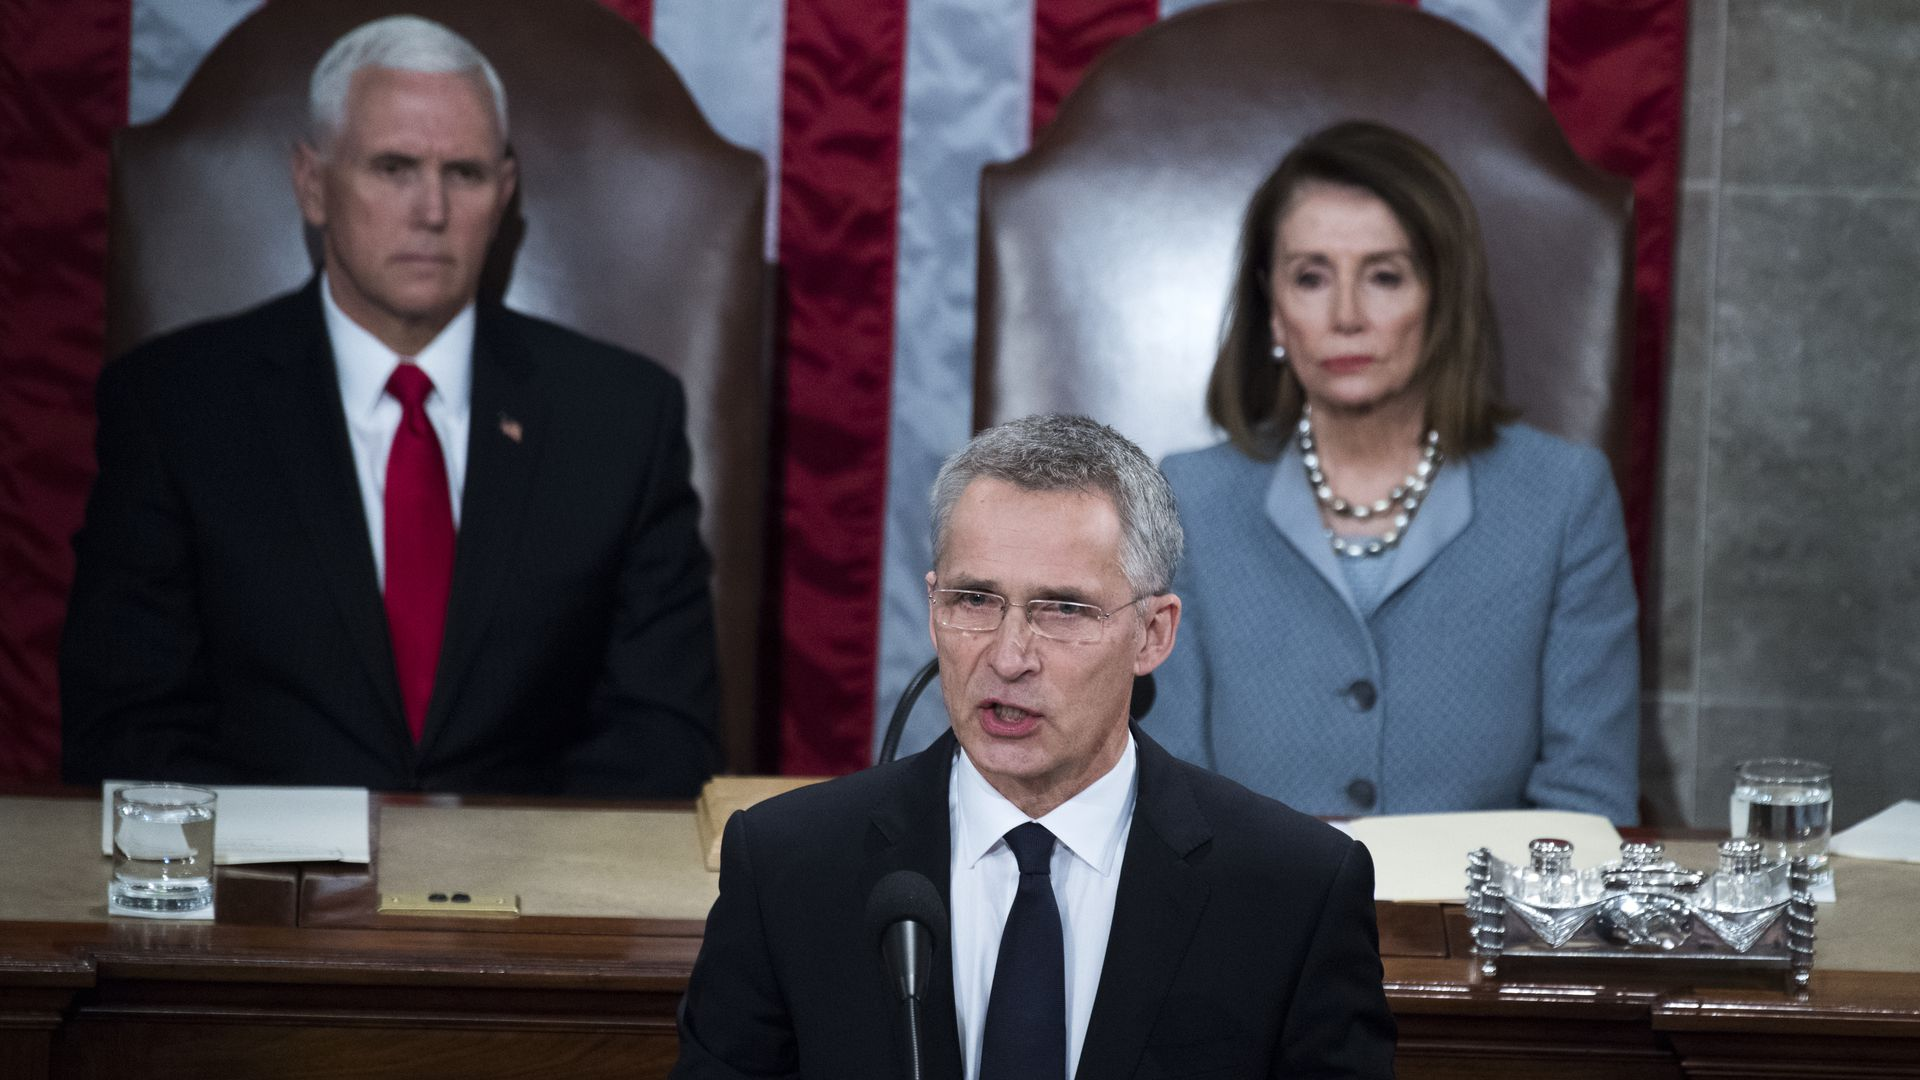 Jens Stoltenberg addressing Congress, with Nancy Pelosi and Mike Pence seated behind him